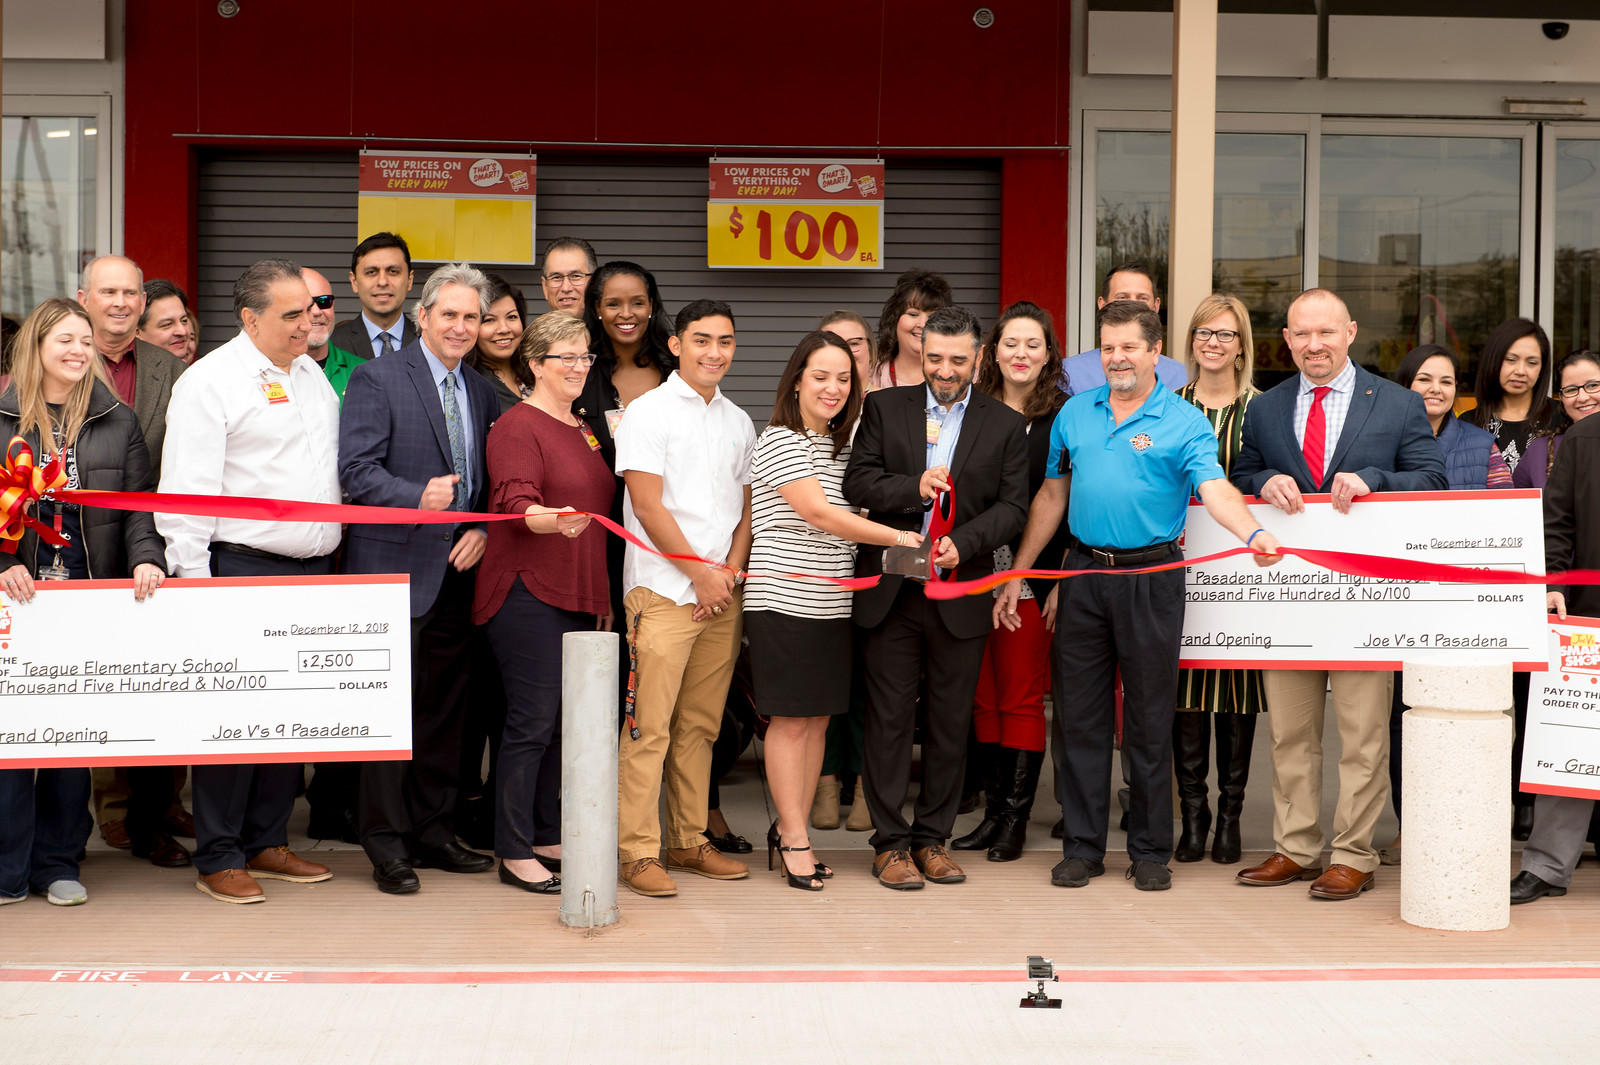 Joe V's Grocery Store opens in Pasadena creating 110 full-time jobs and will invest approximately 13.5 million dollars in capital improvements. Photo